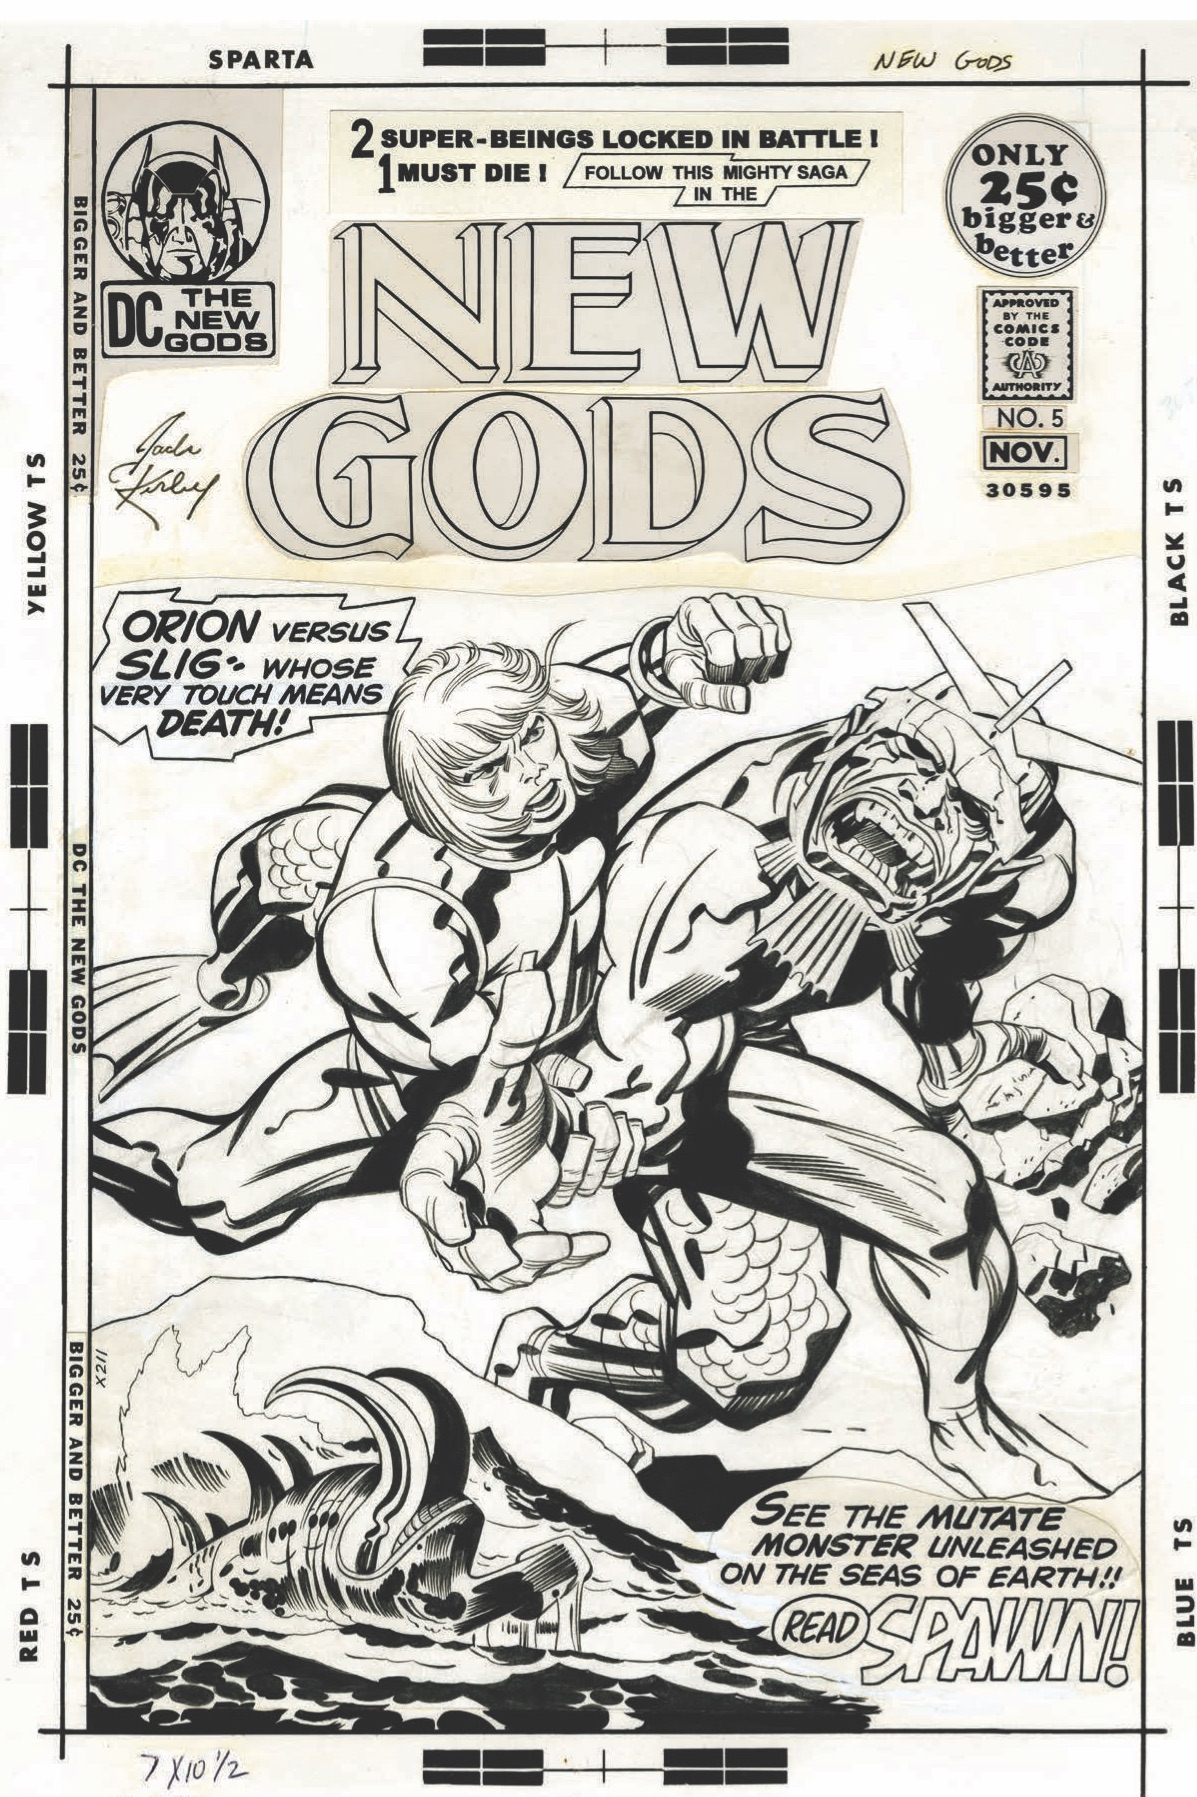 jackkirby_pencils_inks-long2